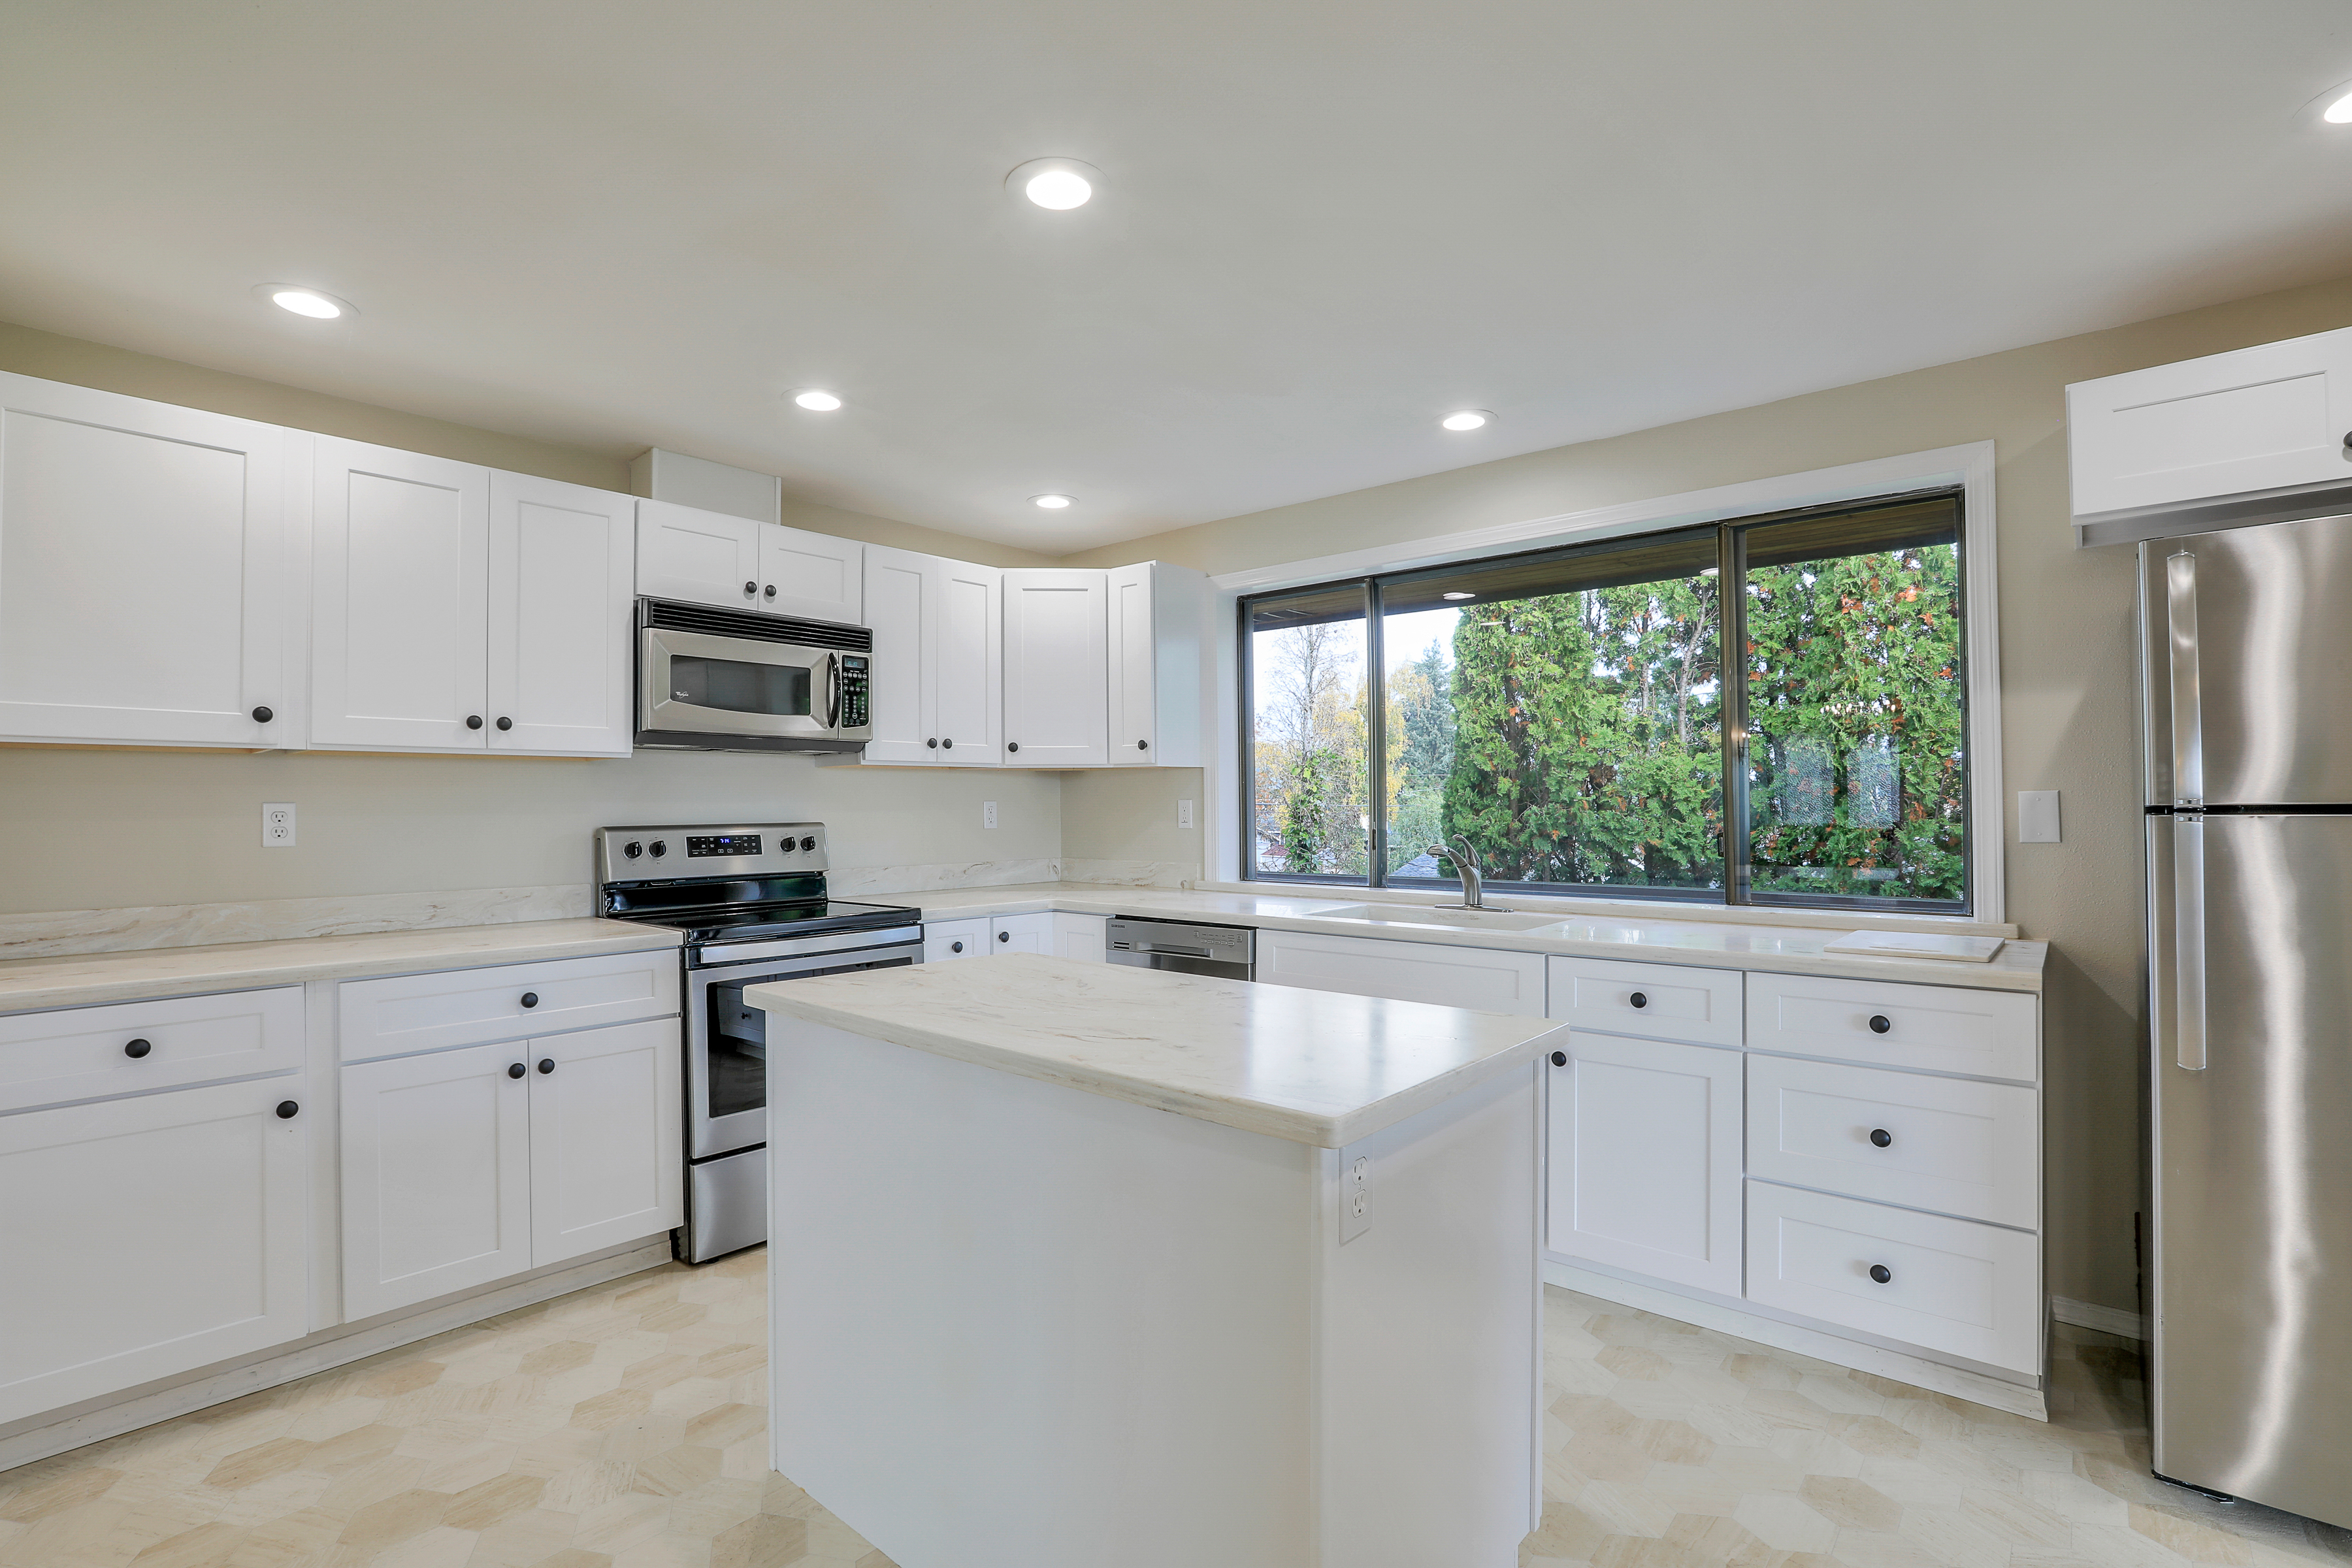 Recently updated kitchen featuring <br>Corian counters and stainless appliances